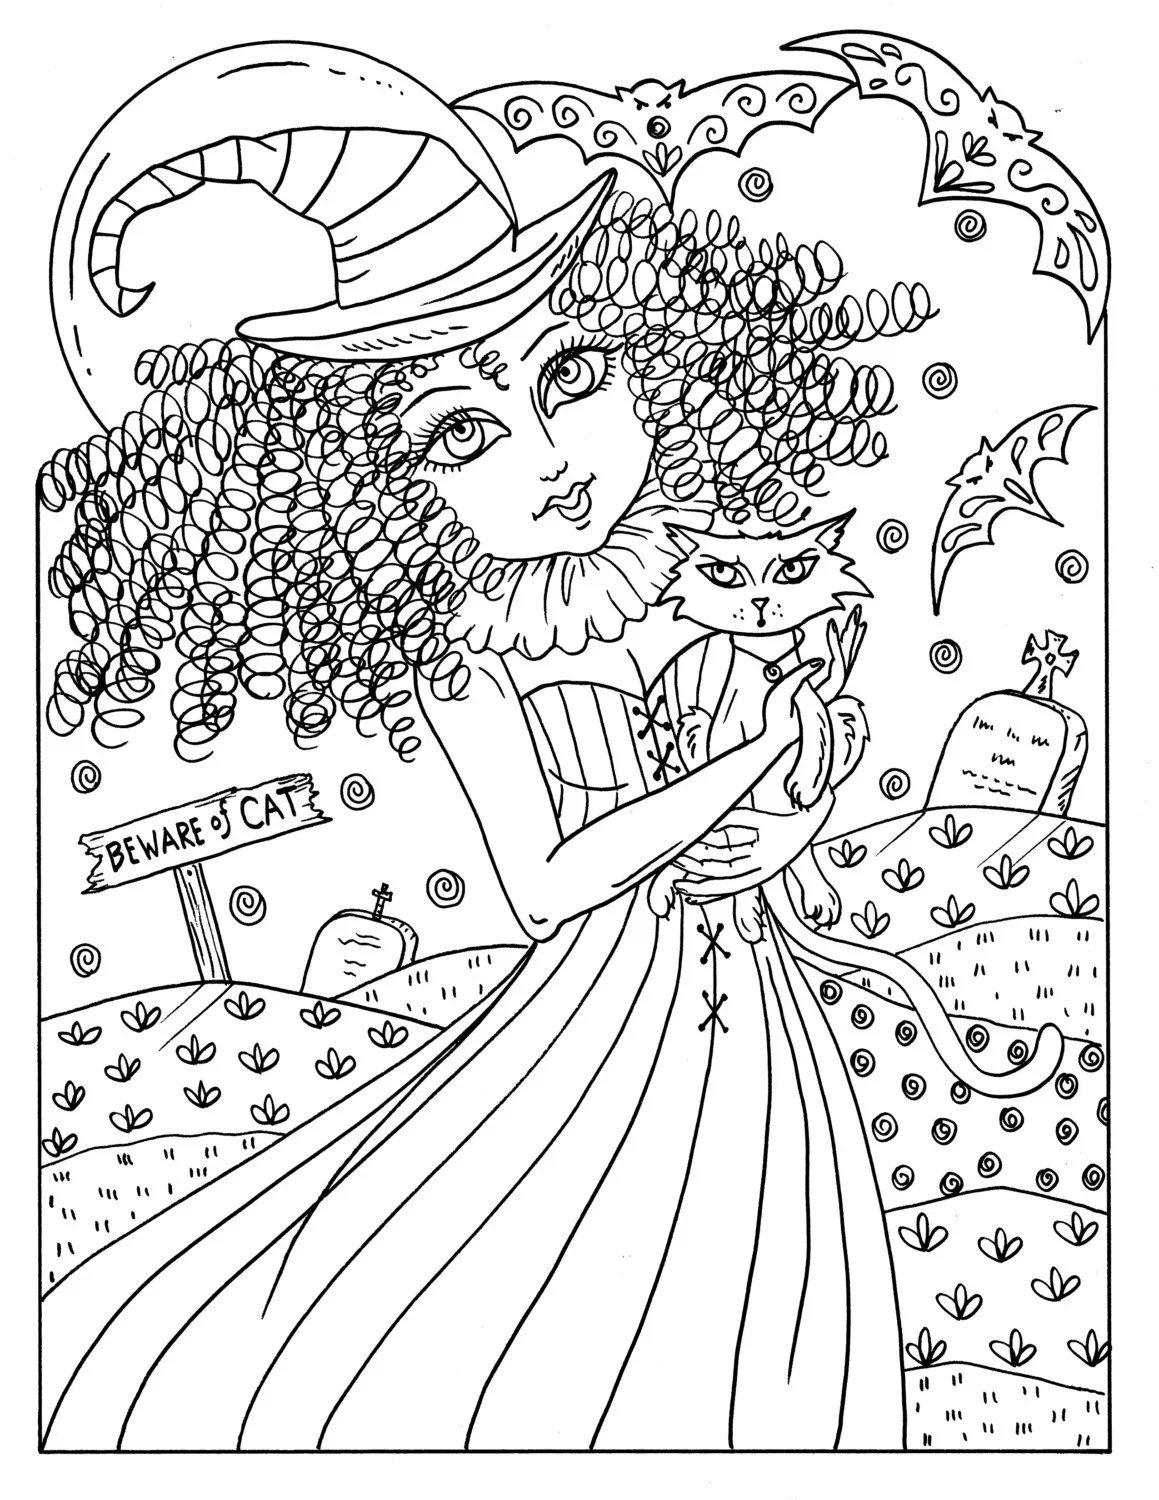 Magical Witches Coloring fun Halloween for all ages spooky